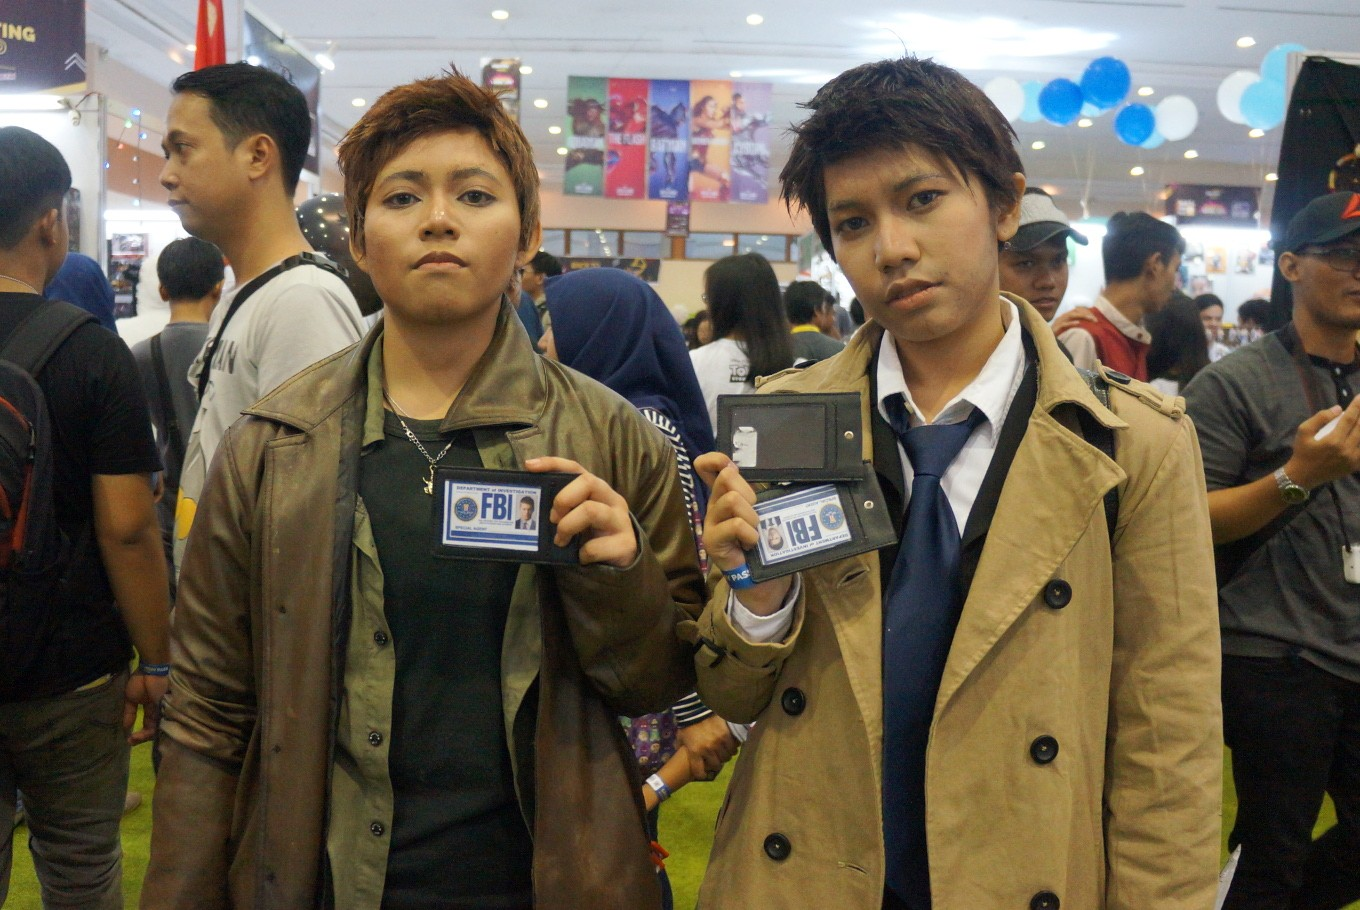 'Supernatural' characters Dean Winchester (left) and Castiel are well portrayed by Indonesian cosplayers at the 2017 Indonesia Comic Con.